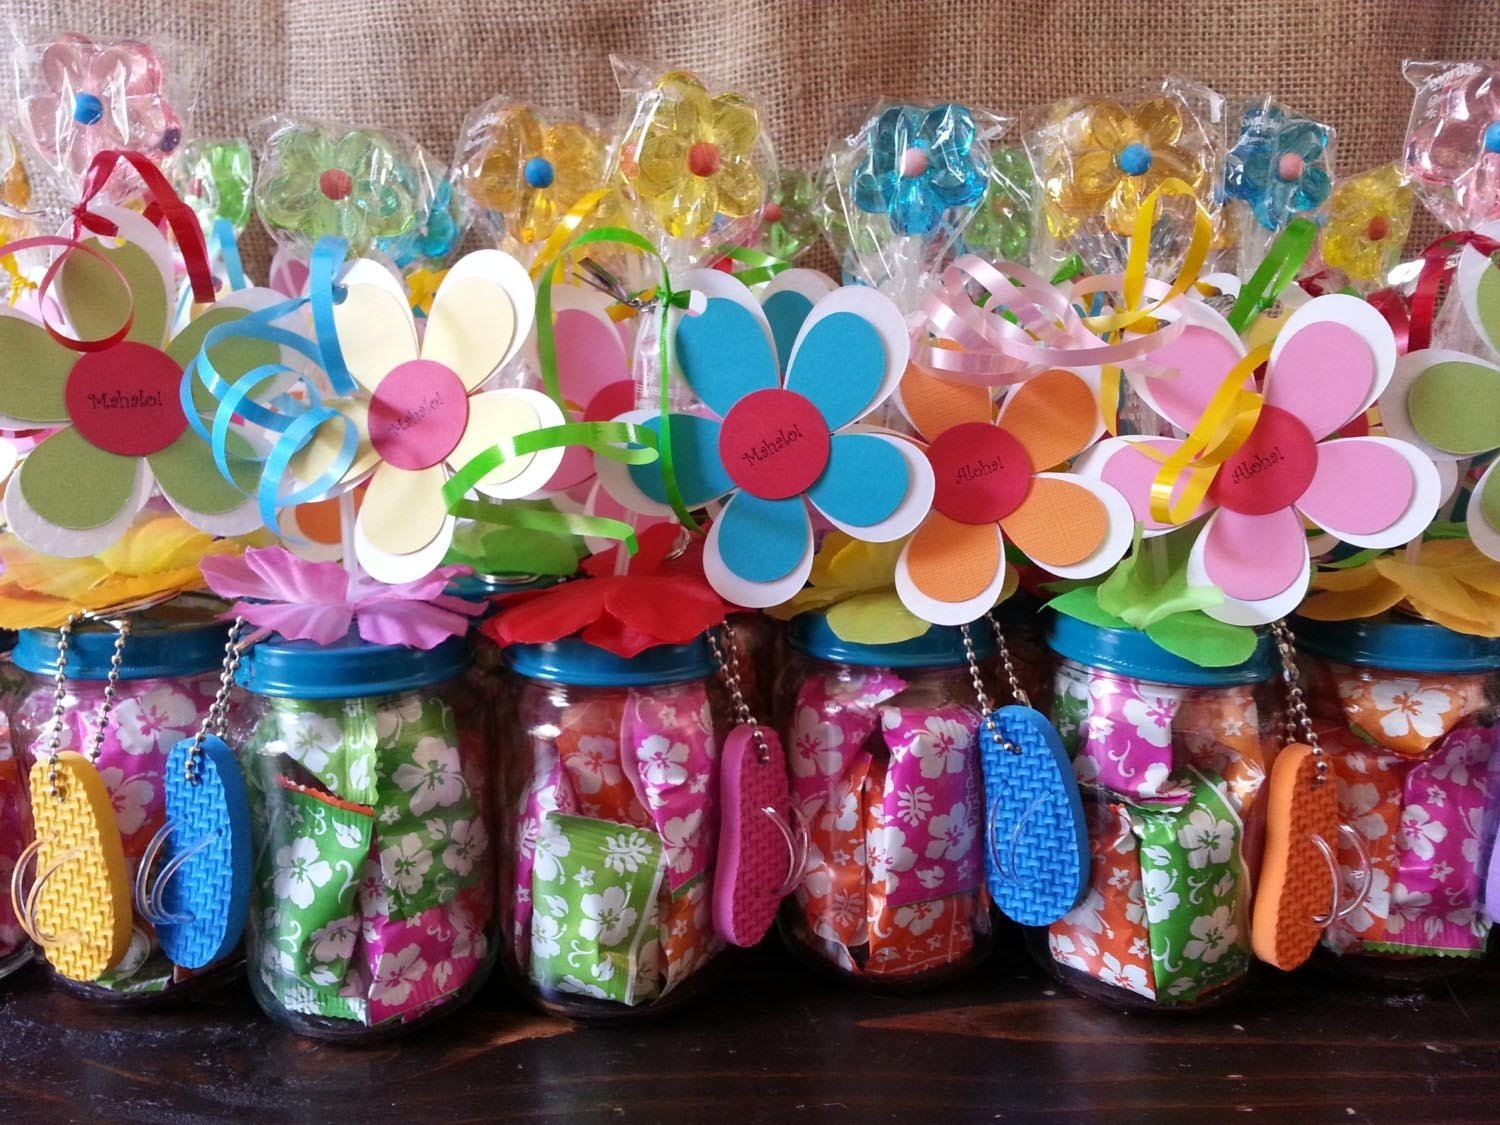 10 nice goodie bag ideas for kids amused goodie bag ideas for kids birthday parties 74